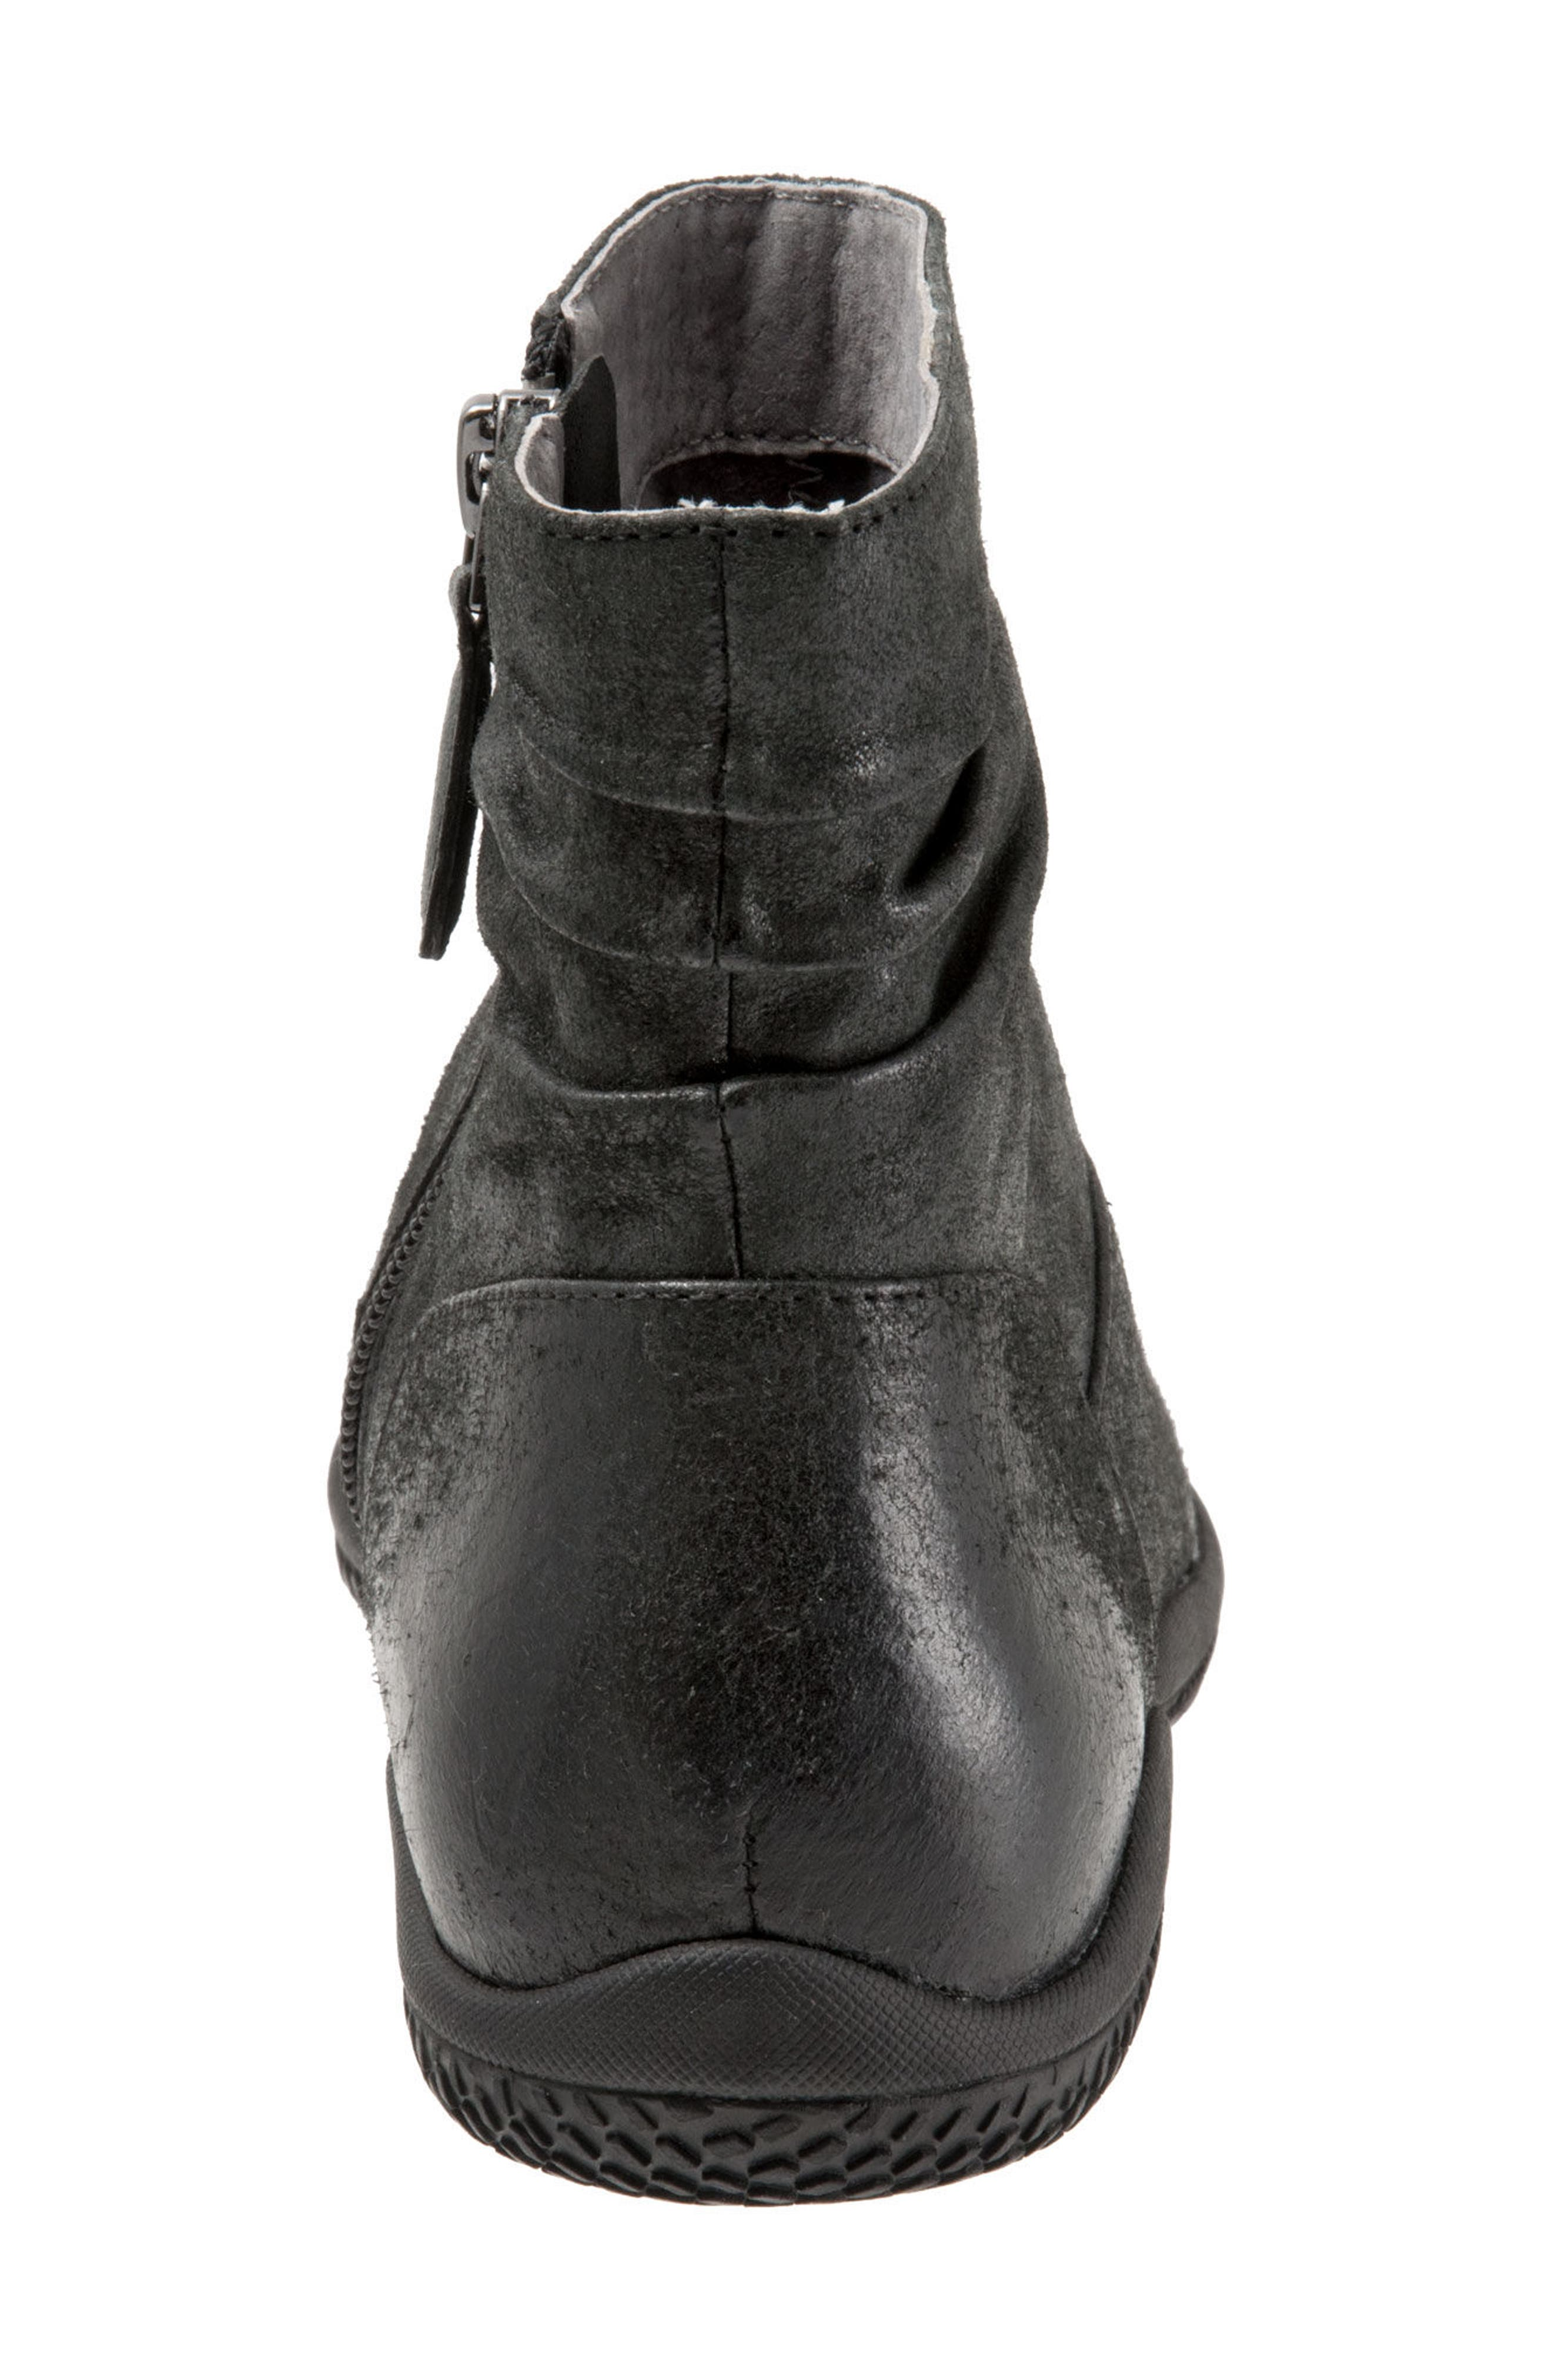 'Hanover' Leather Boot,                             Alternate thumbnail 7, color,                             006